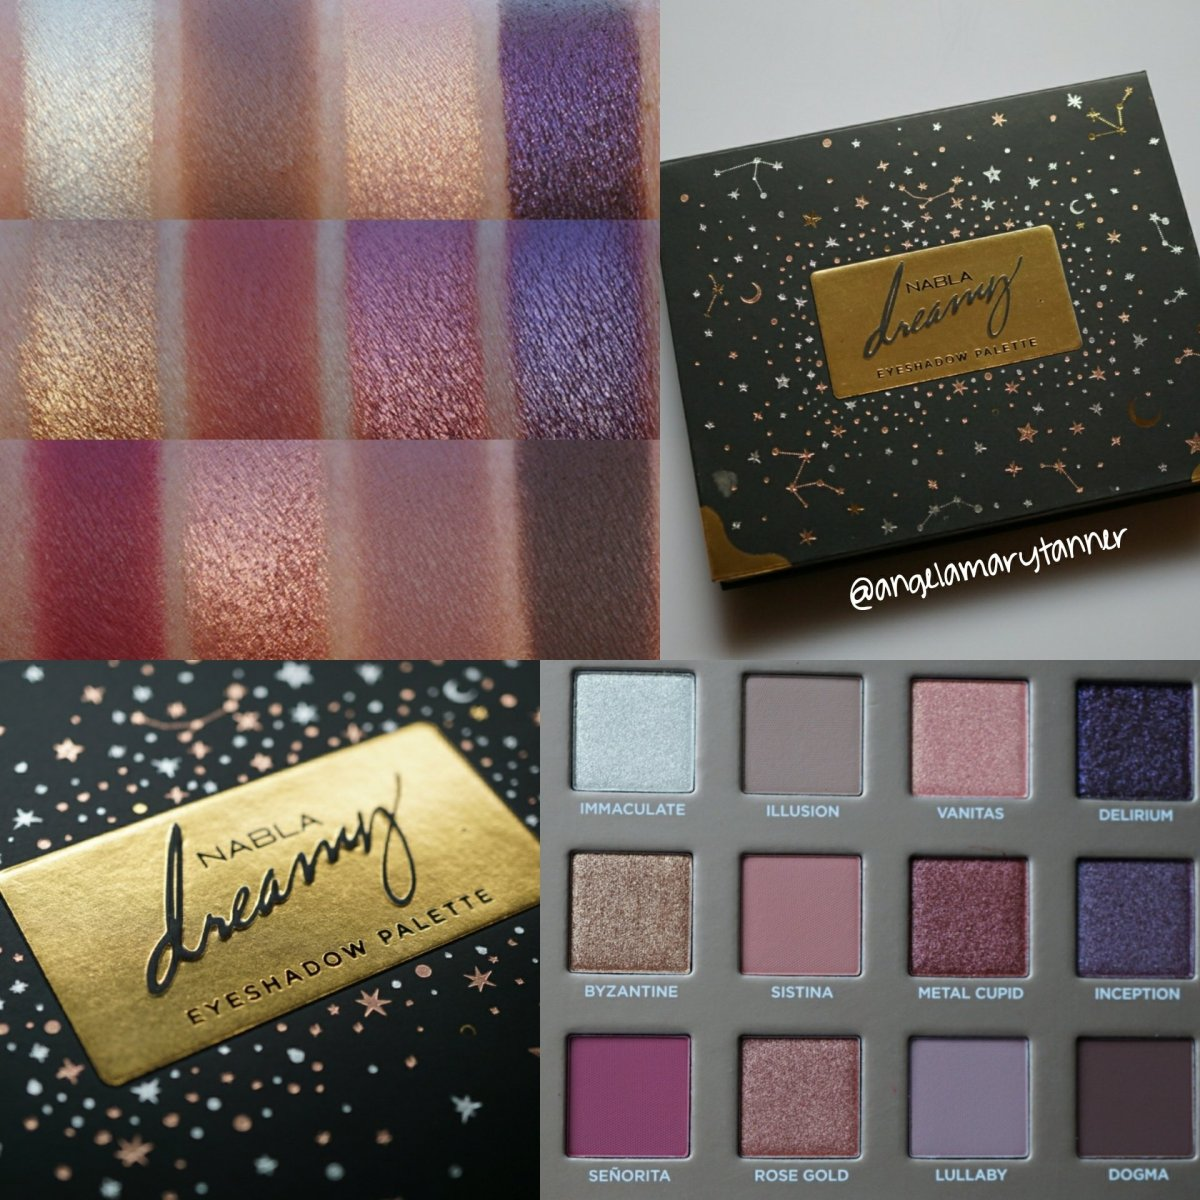 NABLA COSMETICS DREAMY EYESHADOW PALETTE REVIEW and